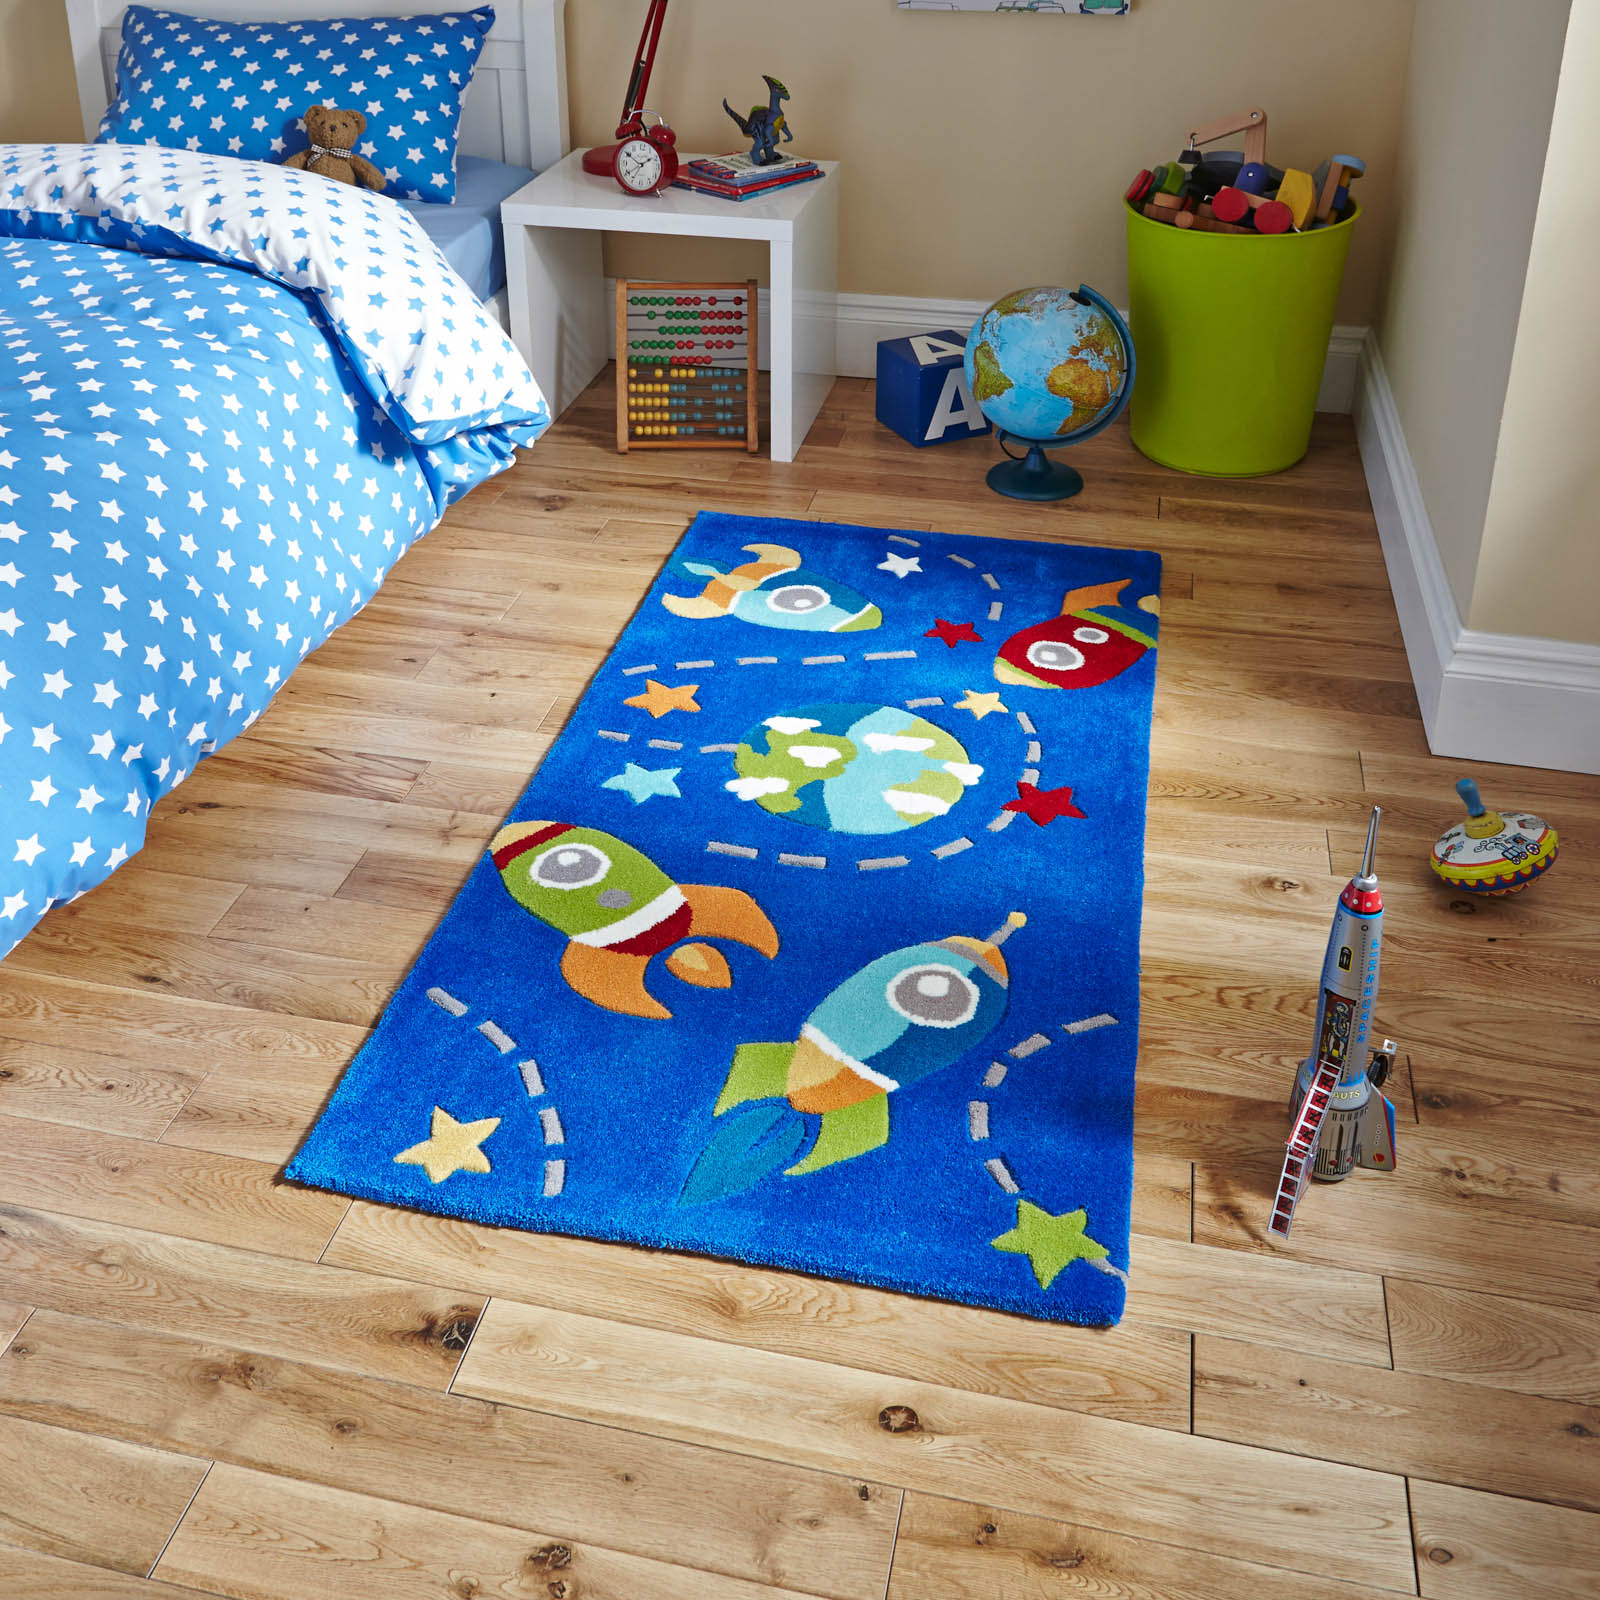 Hong Kong HK6149 Blue Space Rug